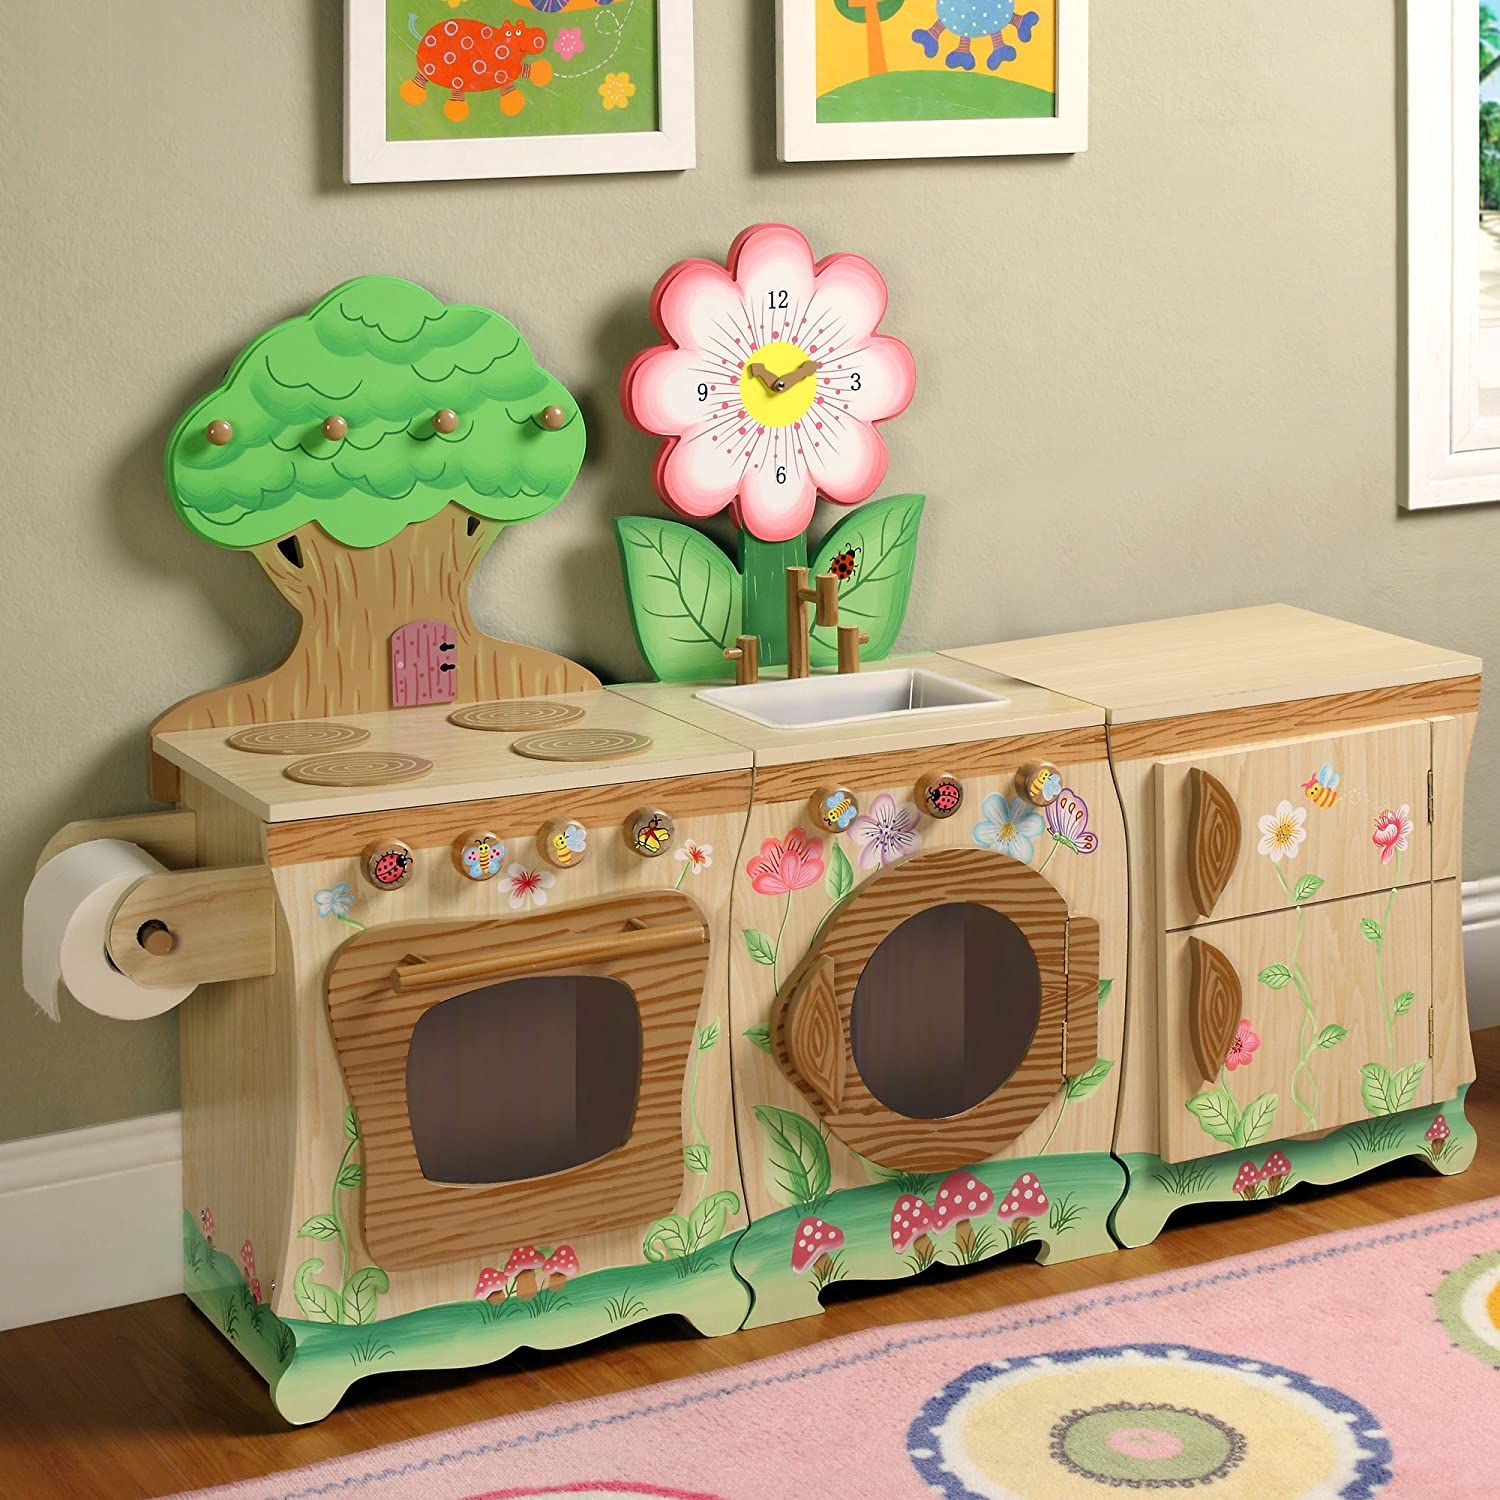 Amazon.com: Teamson Kids - Enchanted Forest Wooden Play Kitchen ...